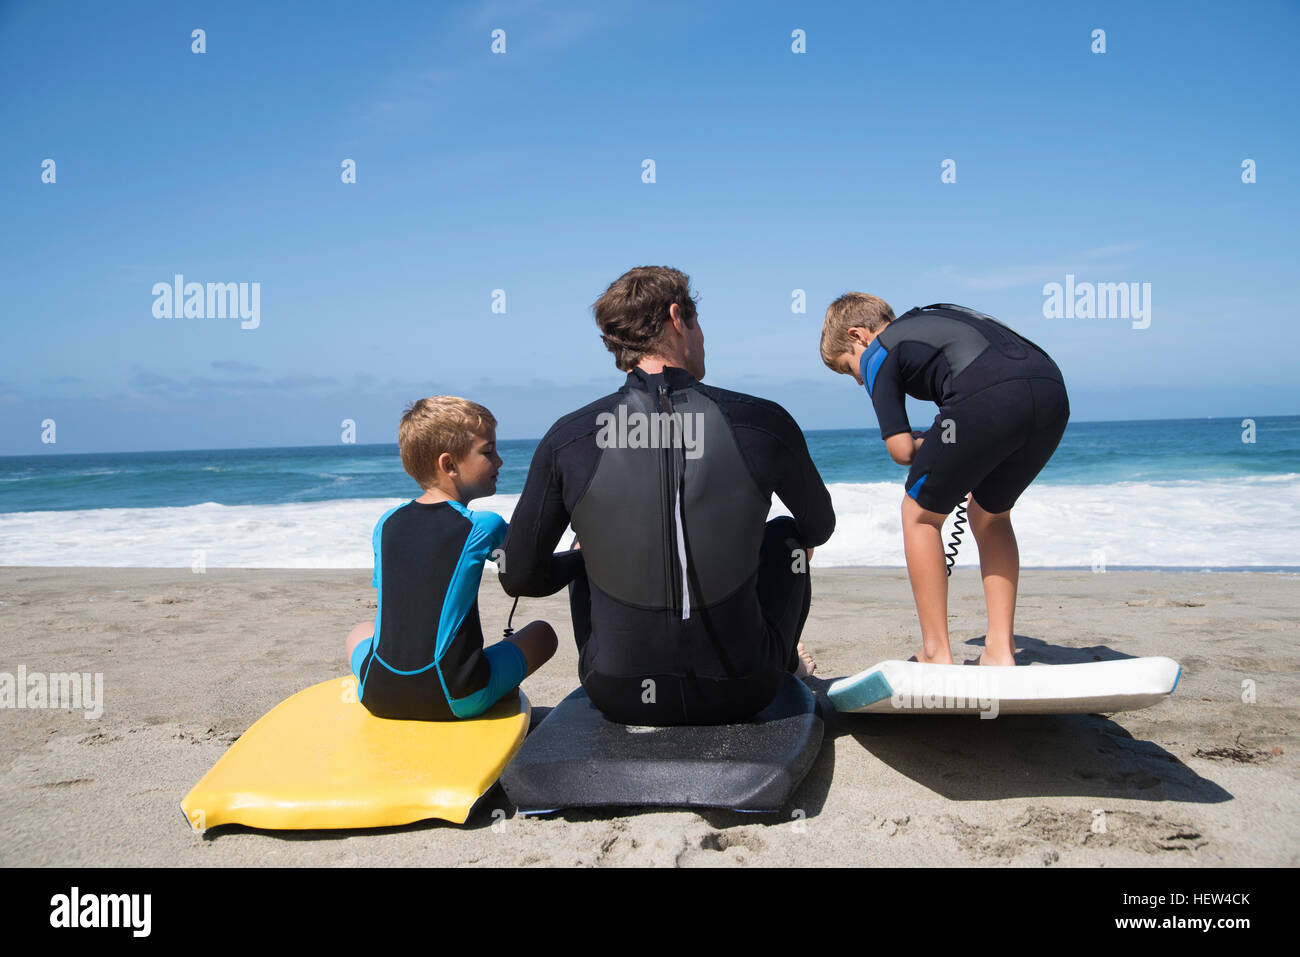 Rear view of father and two sons practicing with bodyboards on beach, Laguna Beach, California, USA Stock Photo